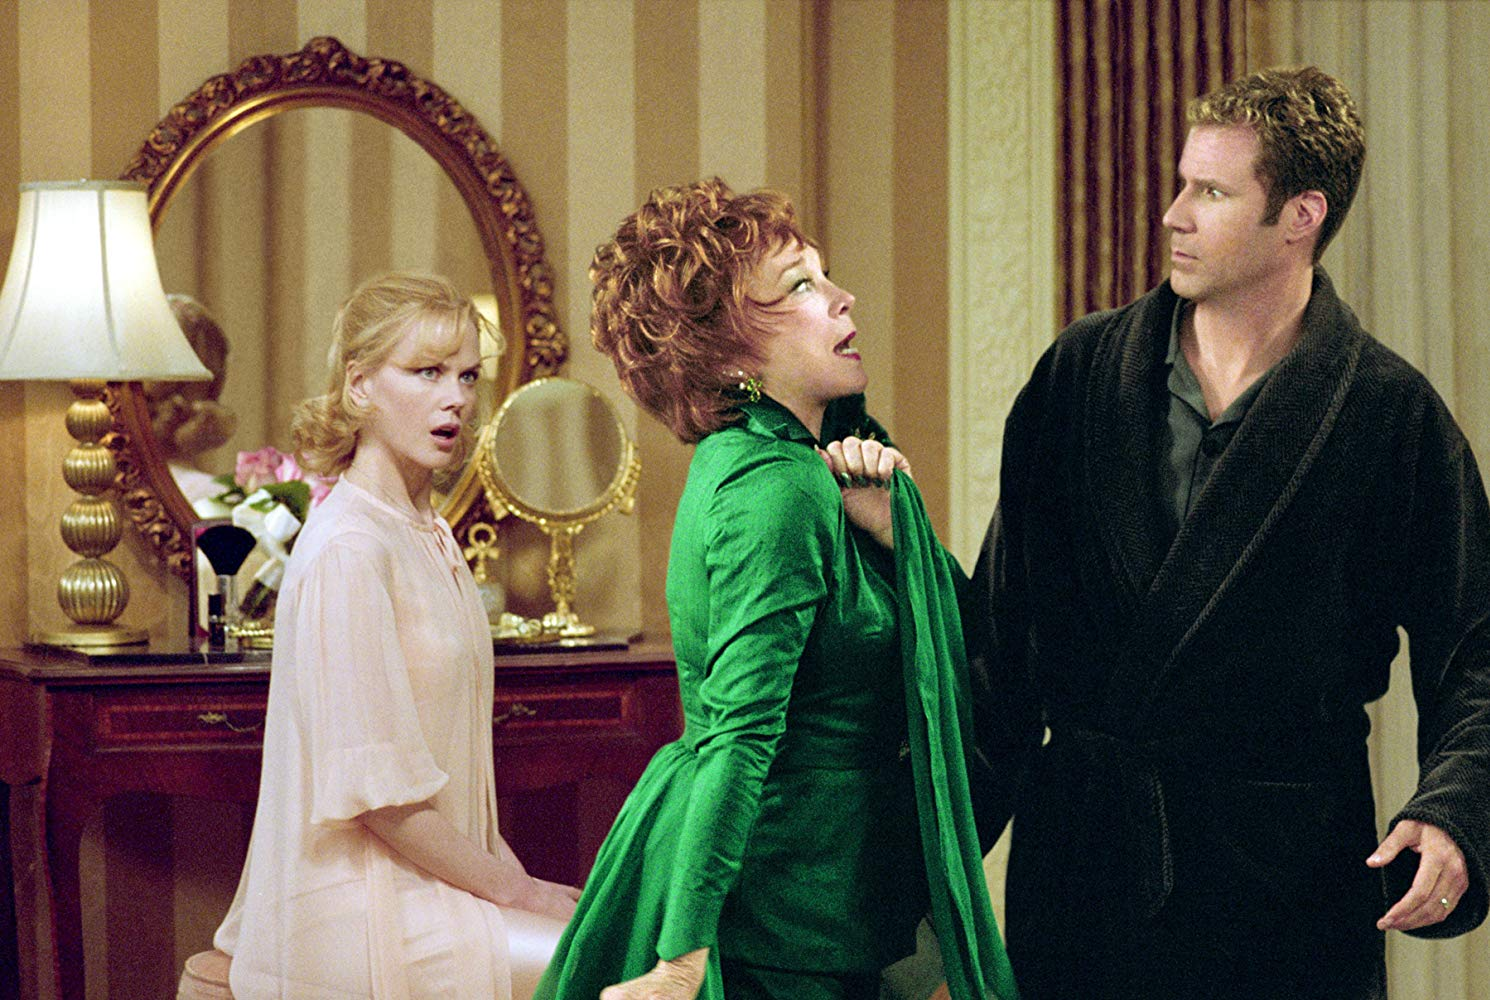 icole Kidman, Shirley MacLaine and Will Ferrell in Bewitched (2005)